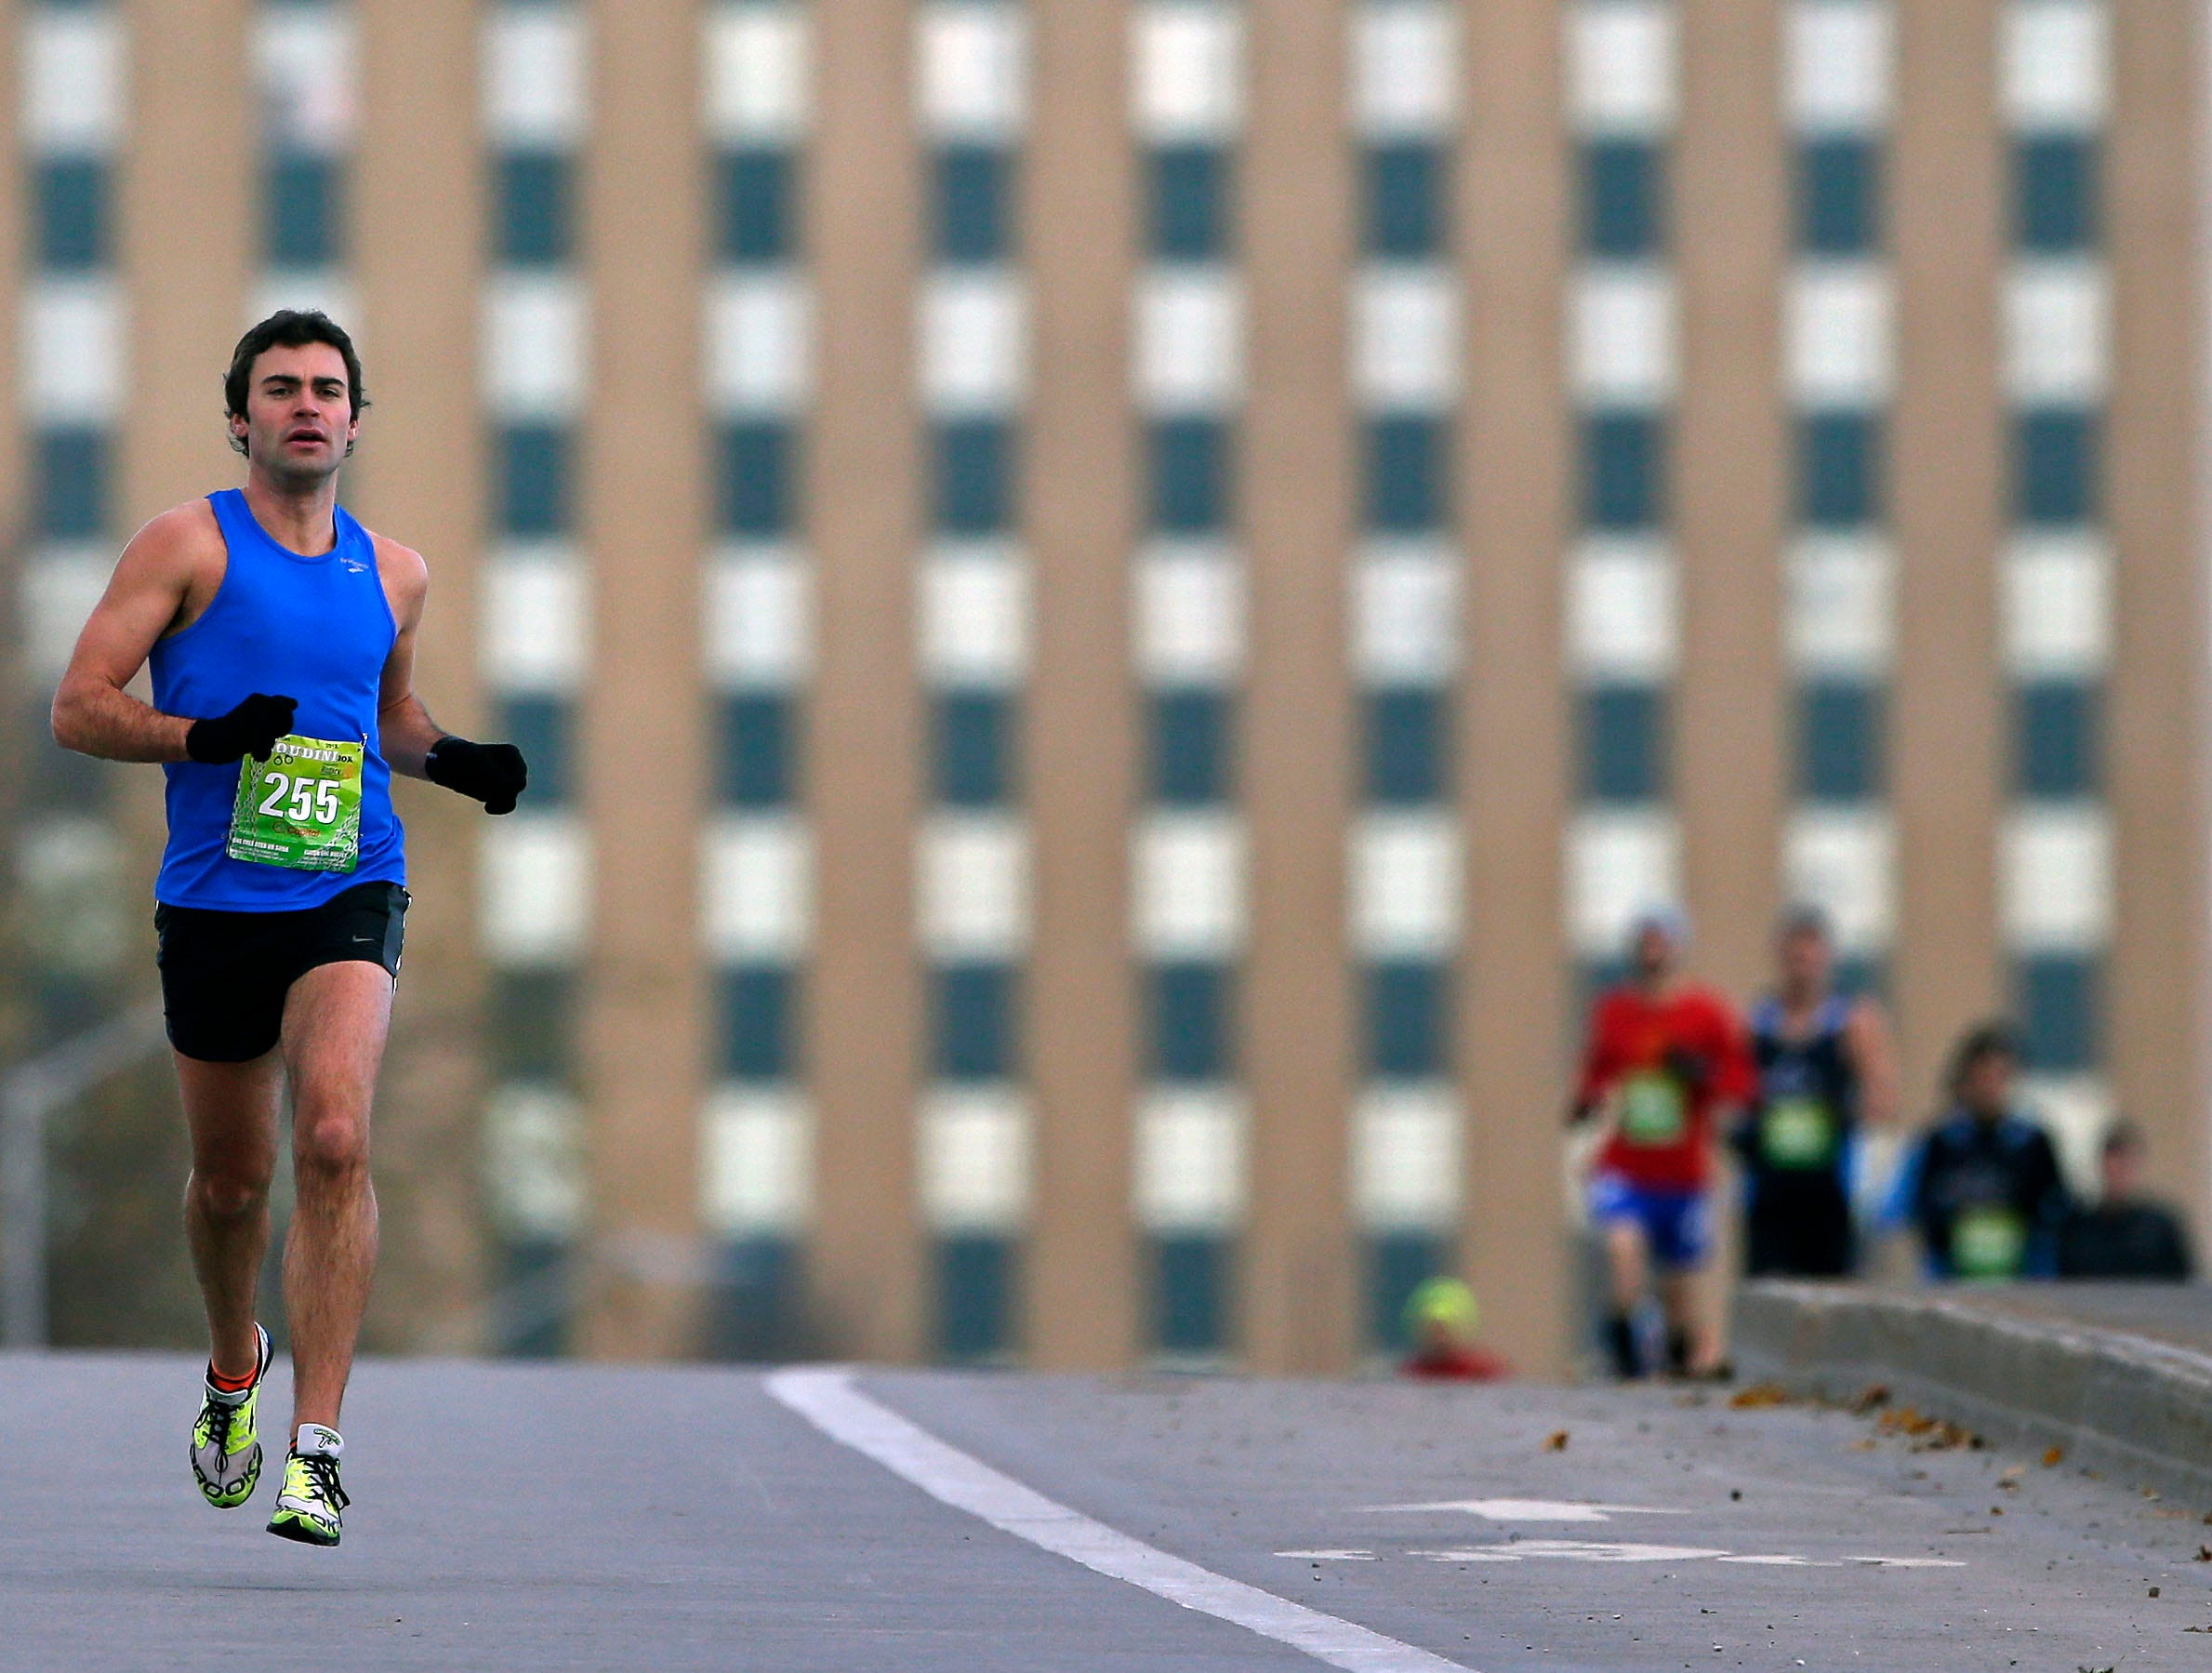 Mike Foust leads the pack at the start of the 4th annual Appleton Houdini 10K Saturday, November 3, 2018, in Appleton, Wis.Ron Page/USA TODAY NETWORK-Wisconsin